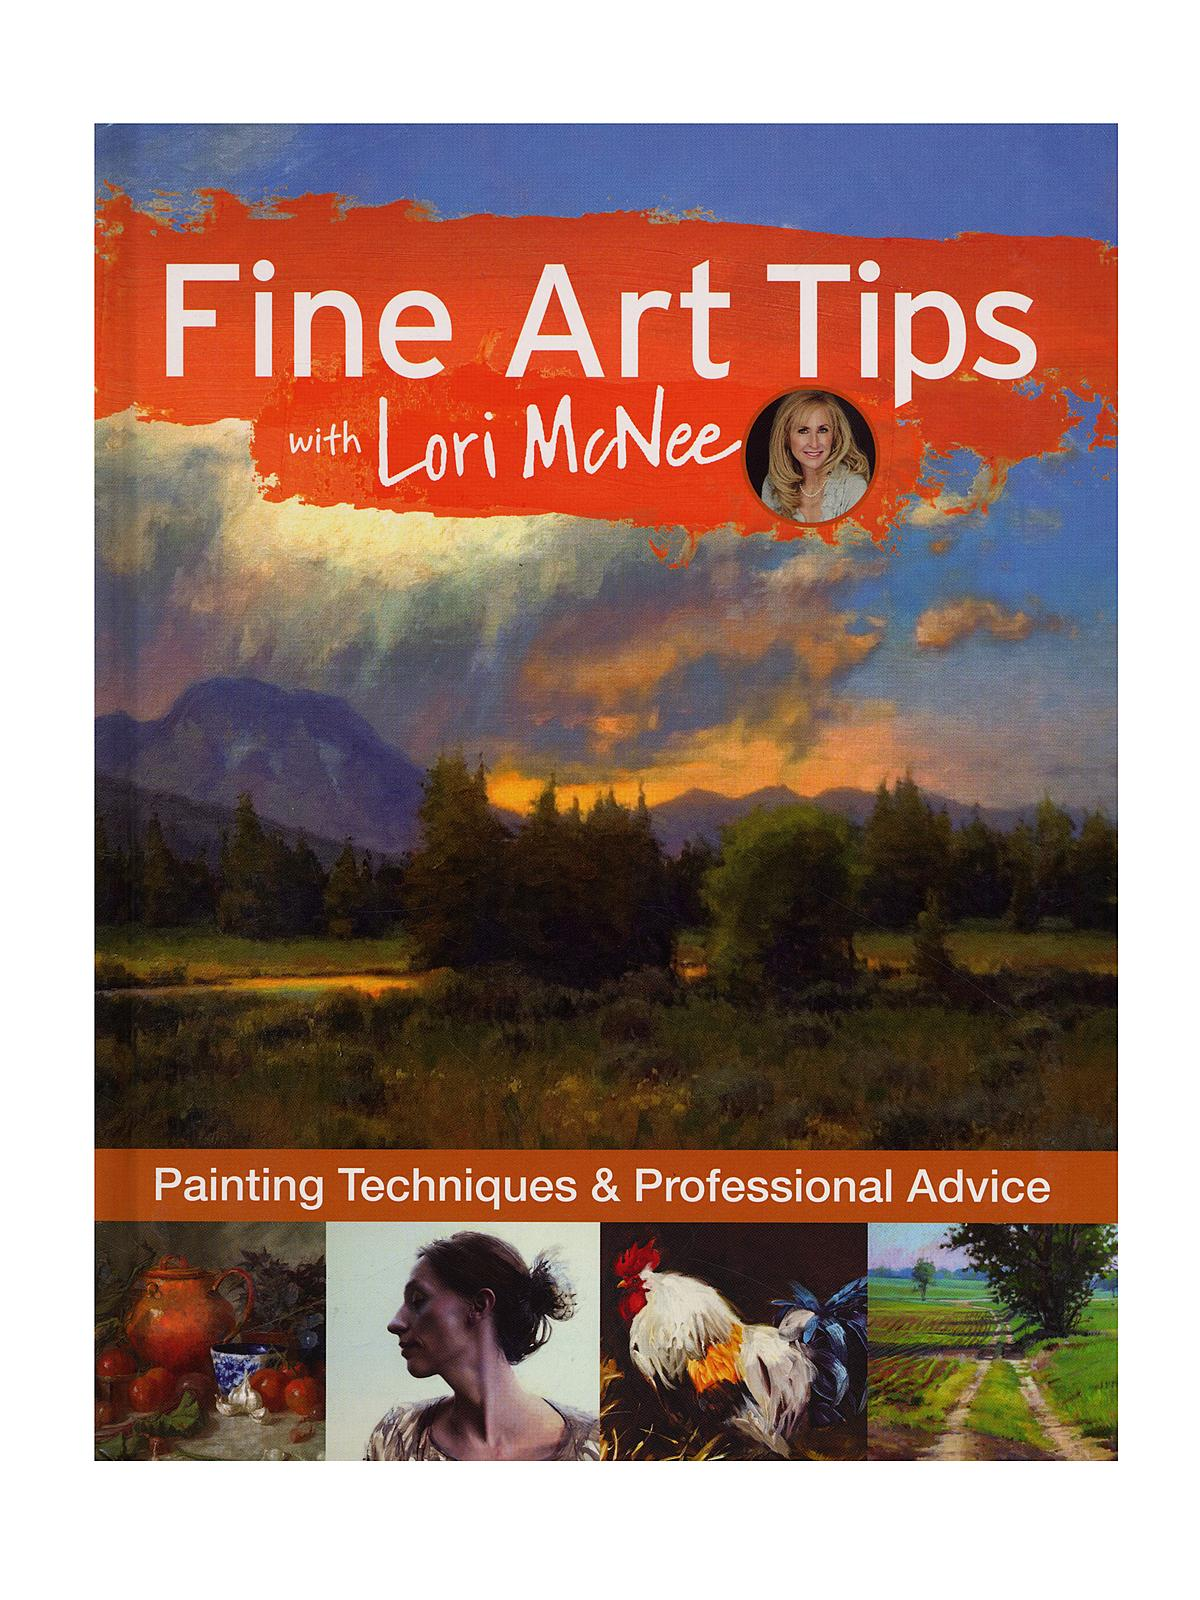 Fine Art Tips with Lori Mcnee each